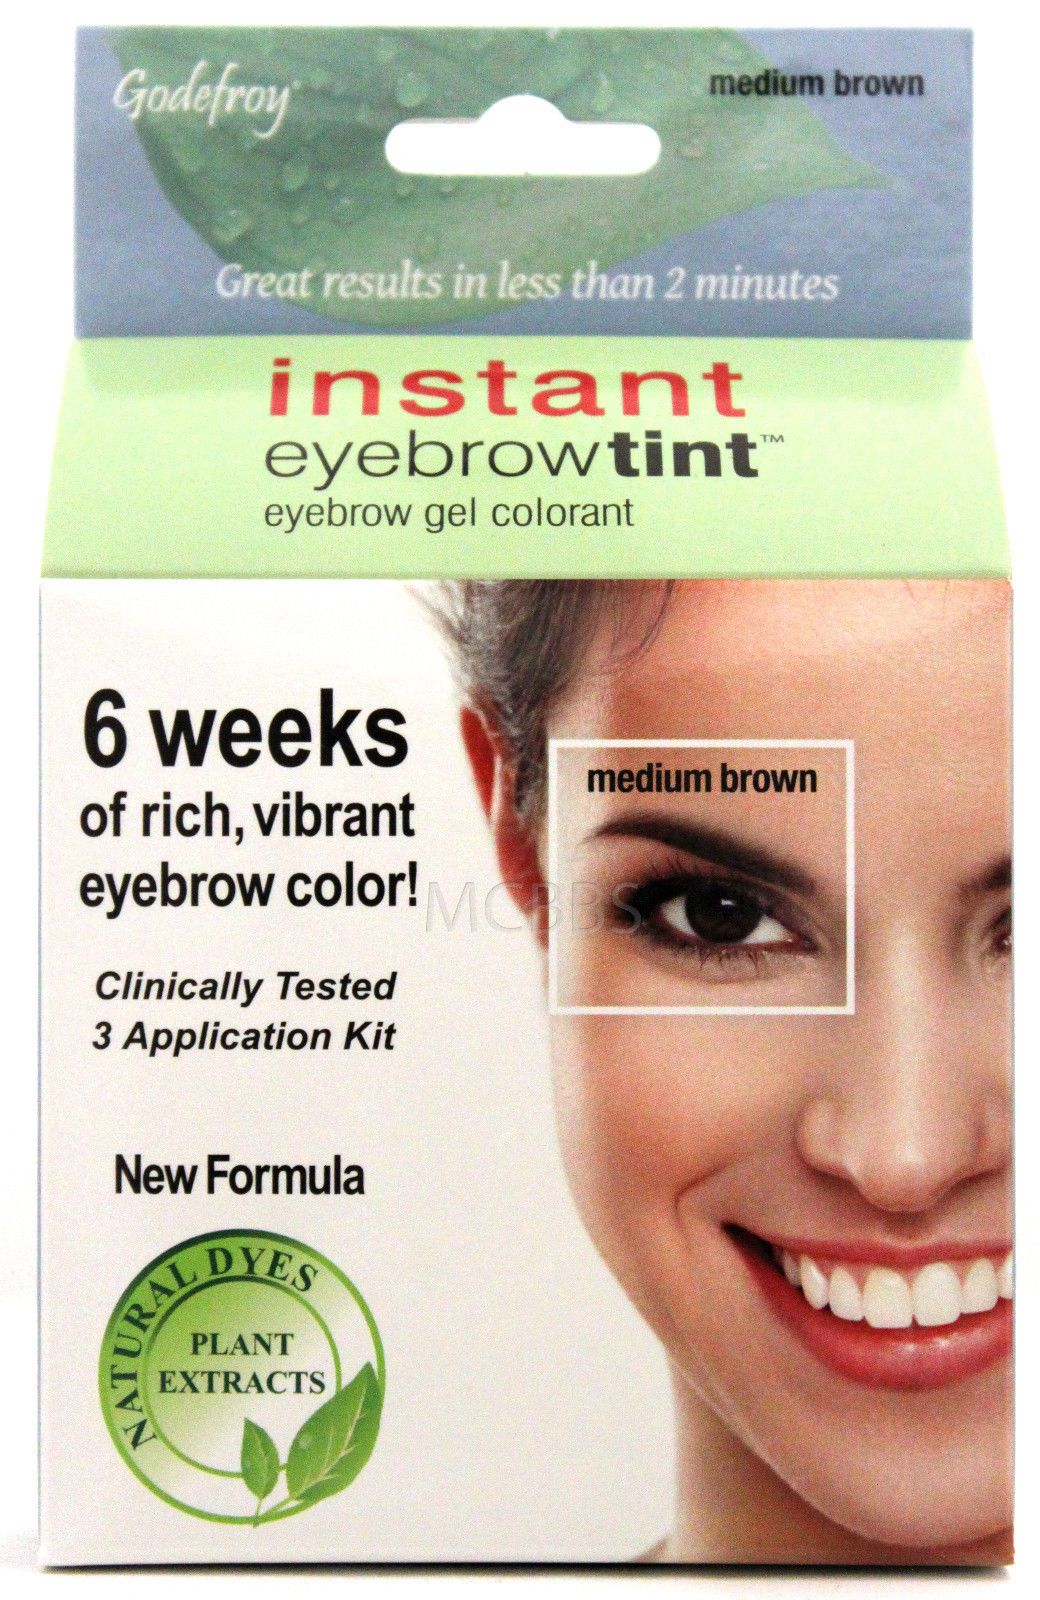 $10.95 - Godefroy Instant Eyebrow Tint Permanent Color Kit Natural ...